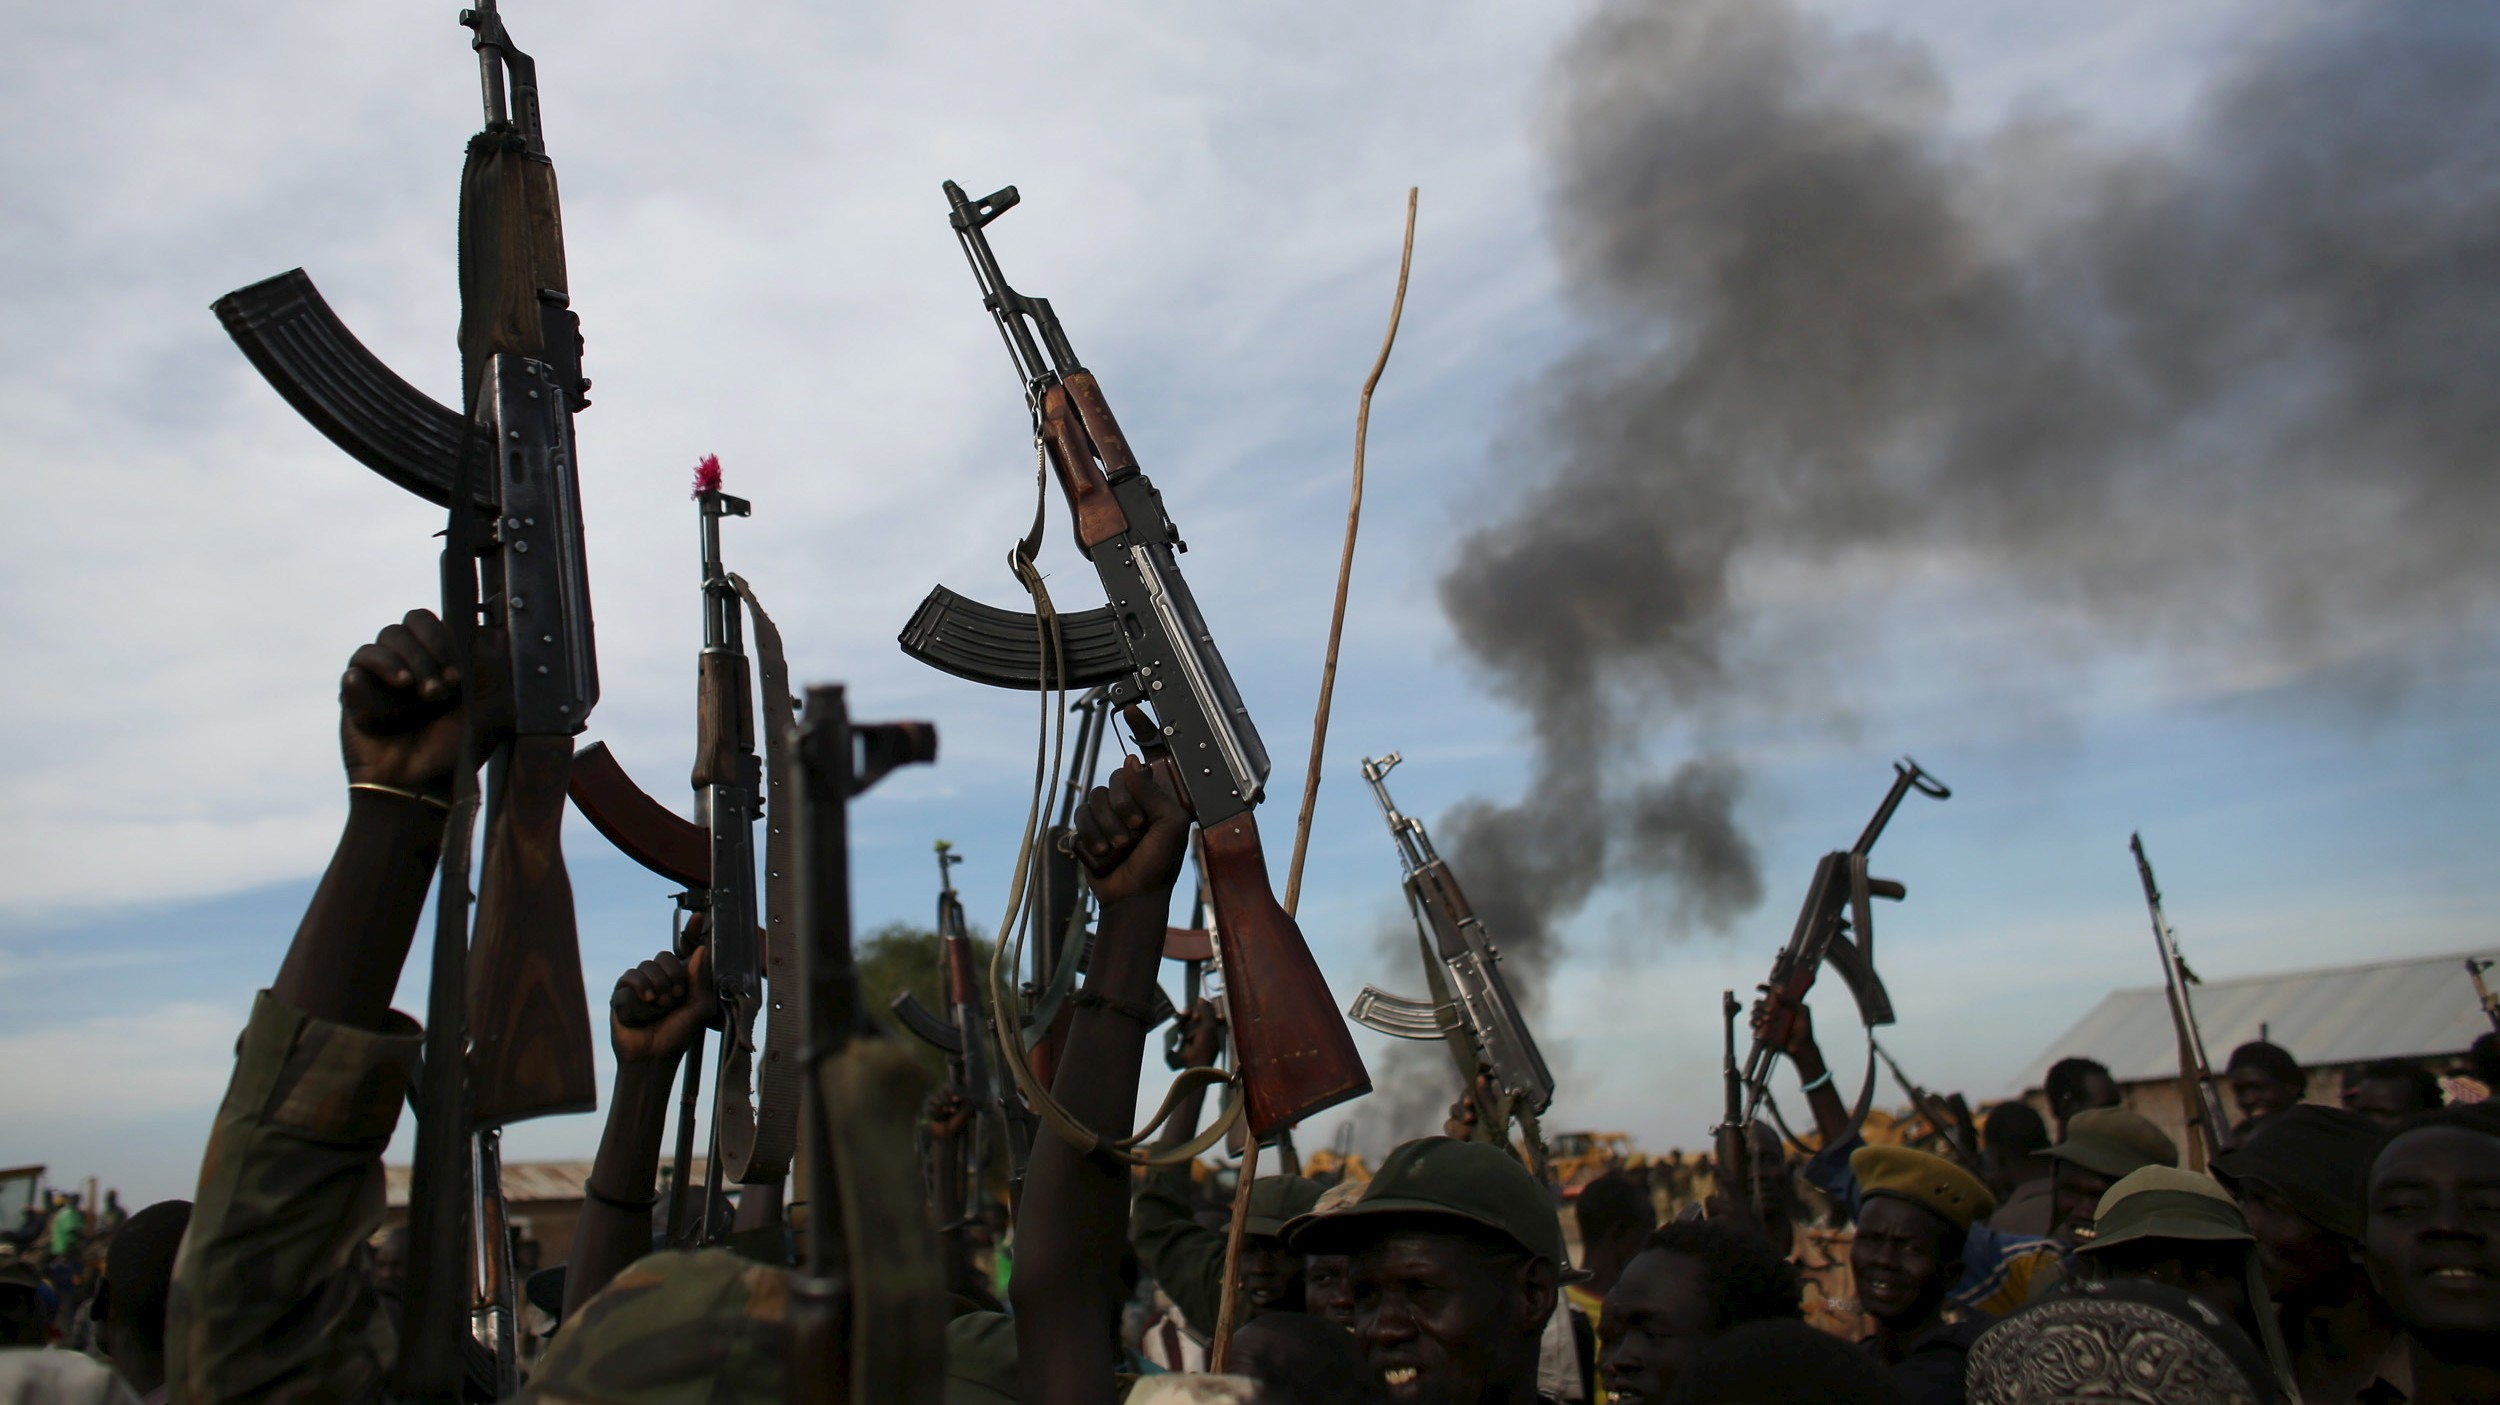 UN Official Estimates 50,000 Dead in South Sudan as Violence Spreads